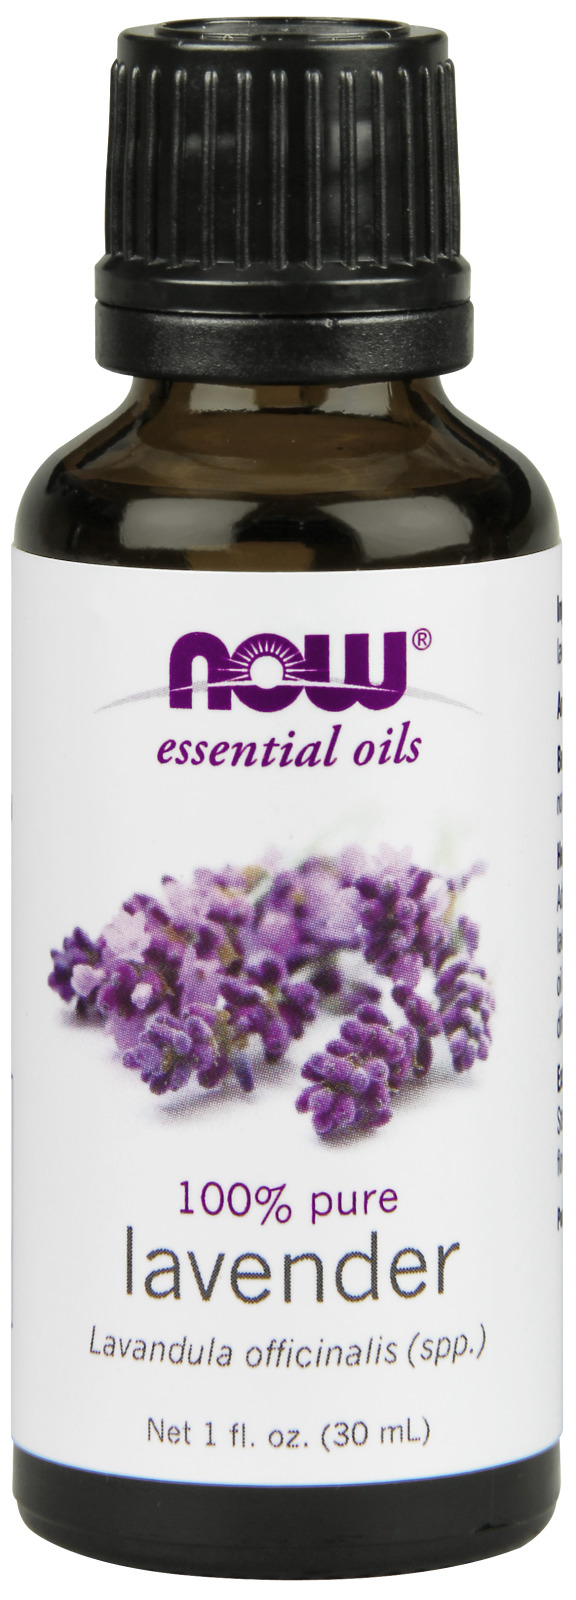 Lavender Oil 16 fl oz (473 ml) by NOW